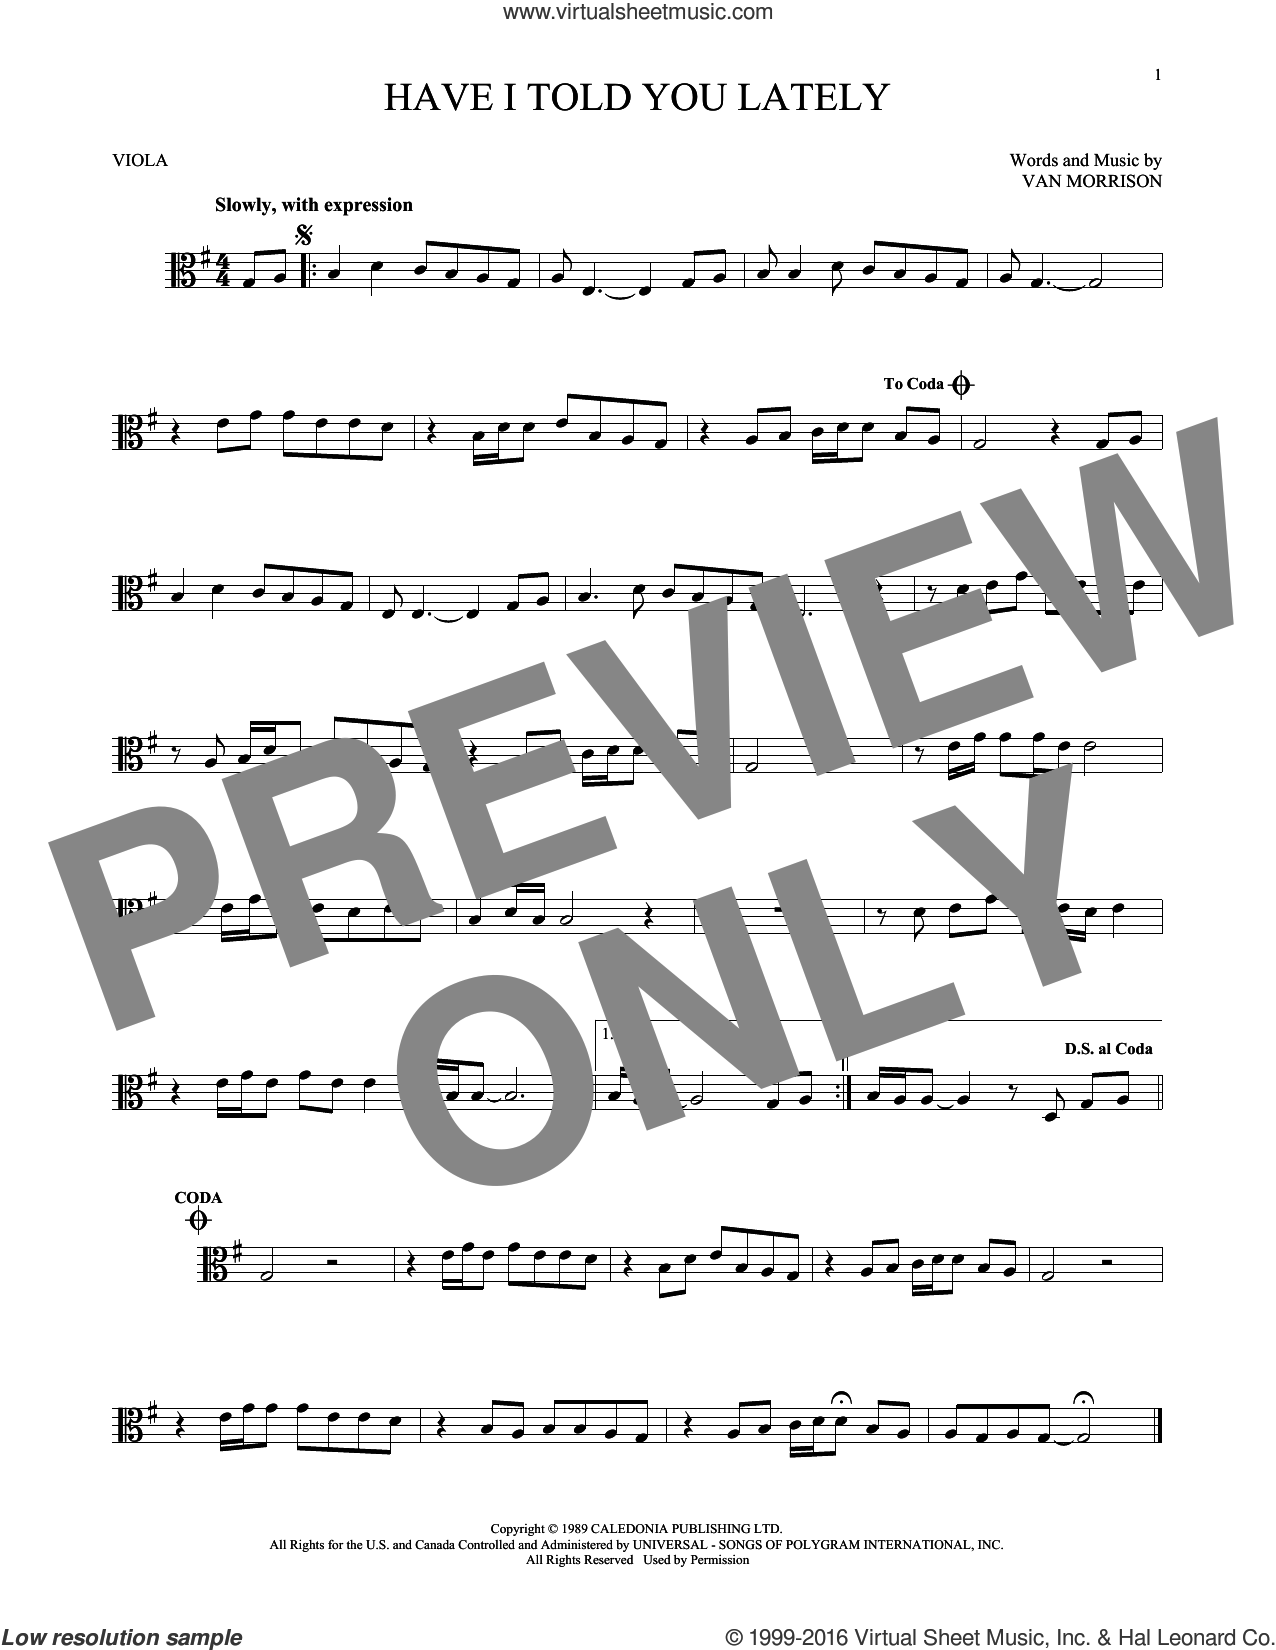 Have I Told You Lately sheet music for viola solo by Van Morrison, intermediate skill level